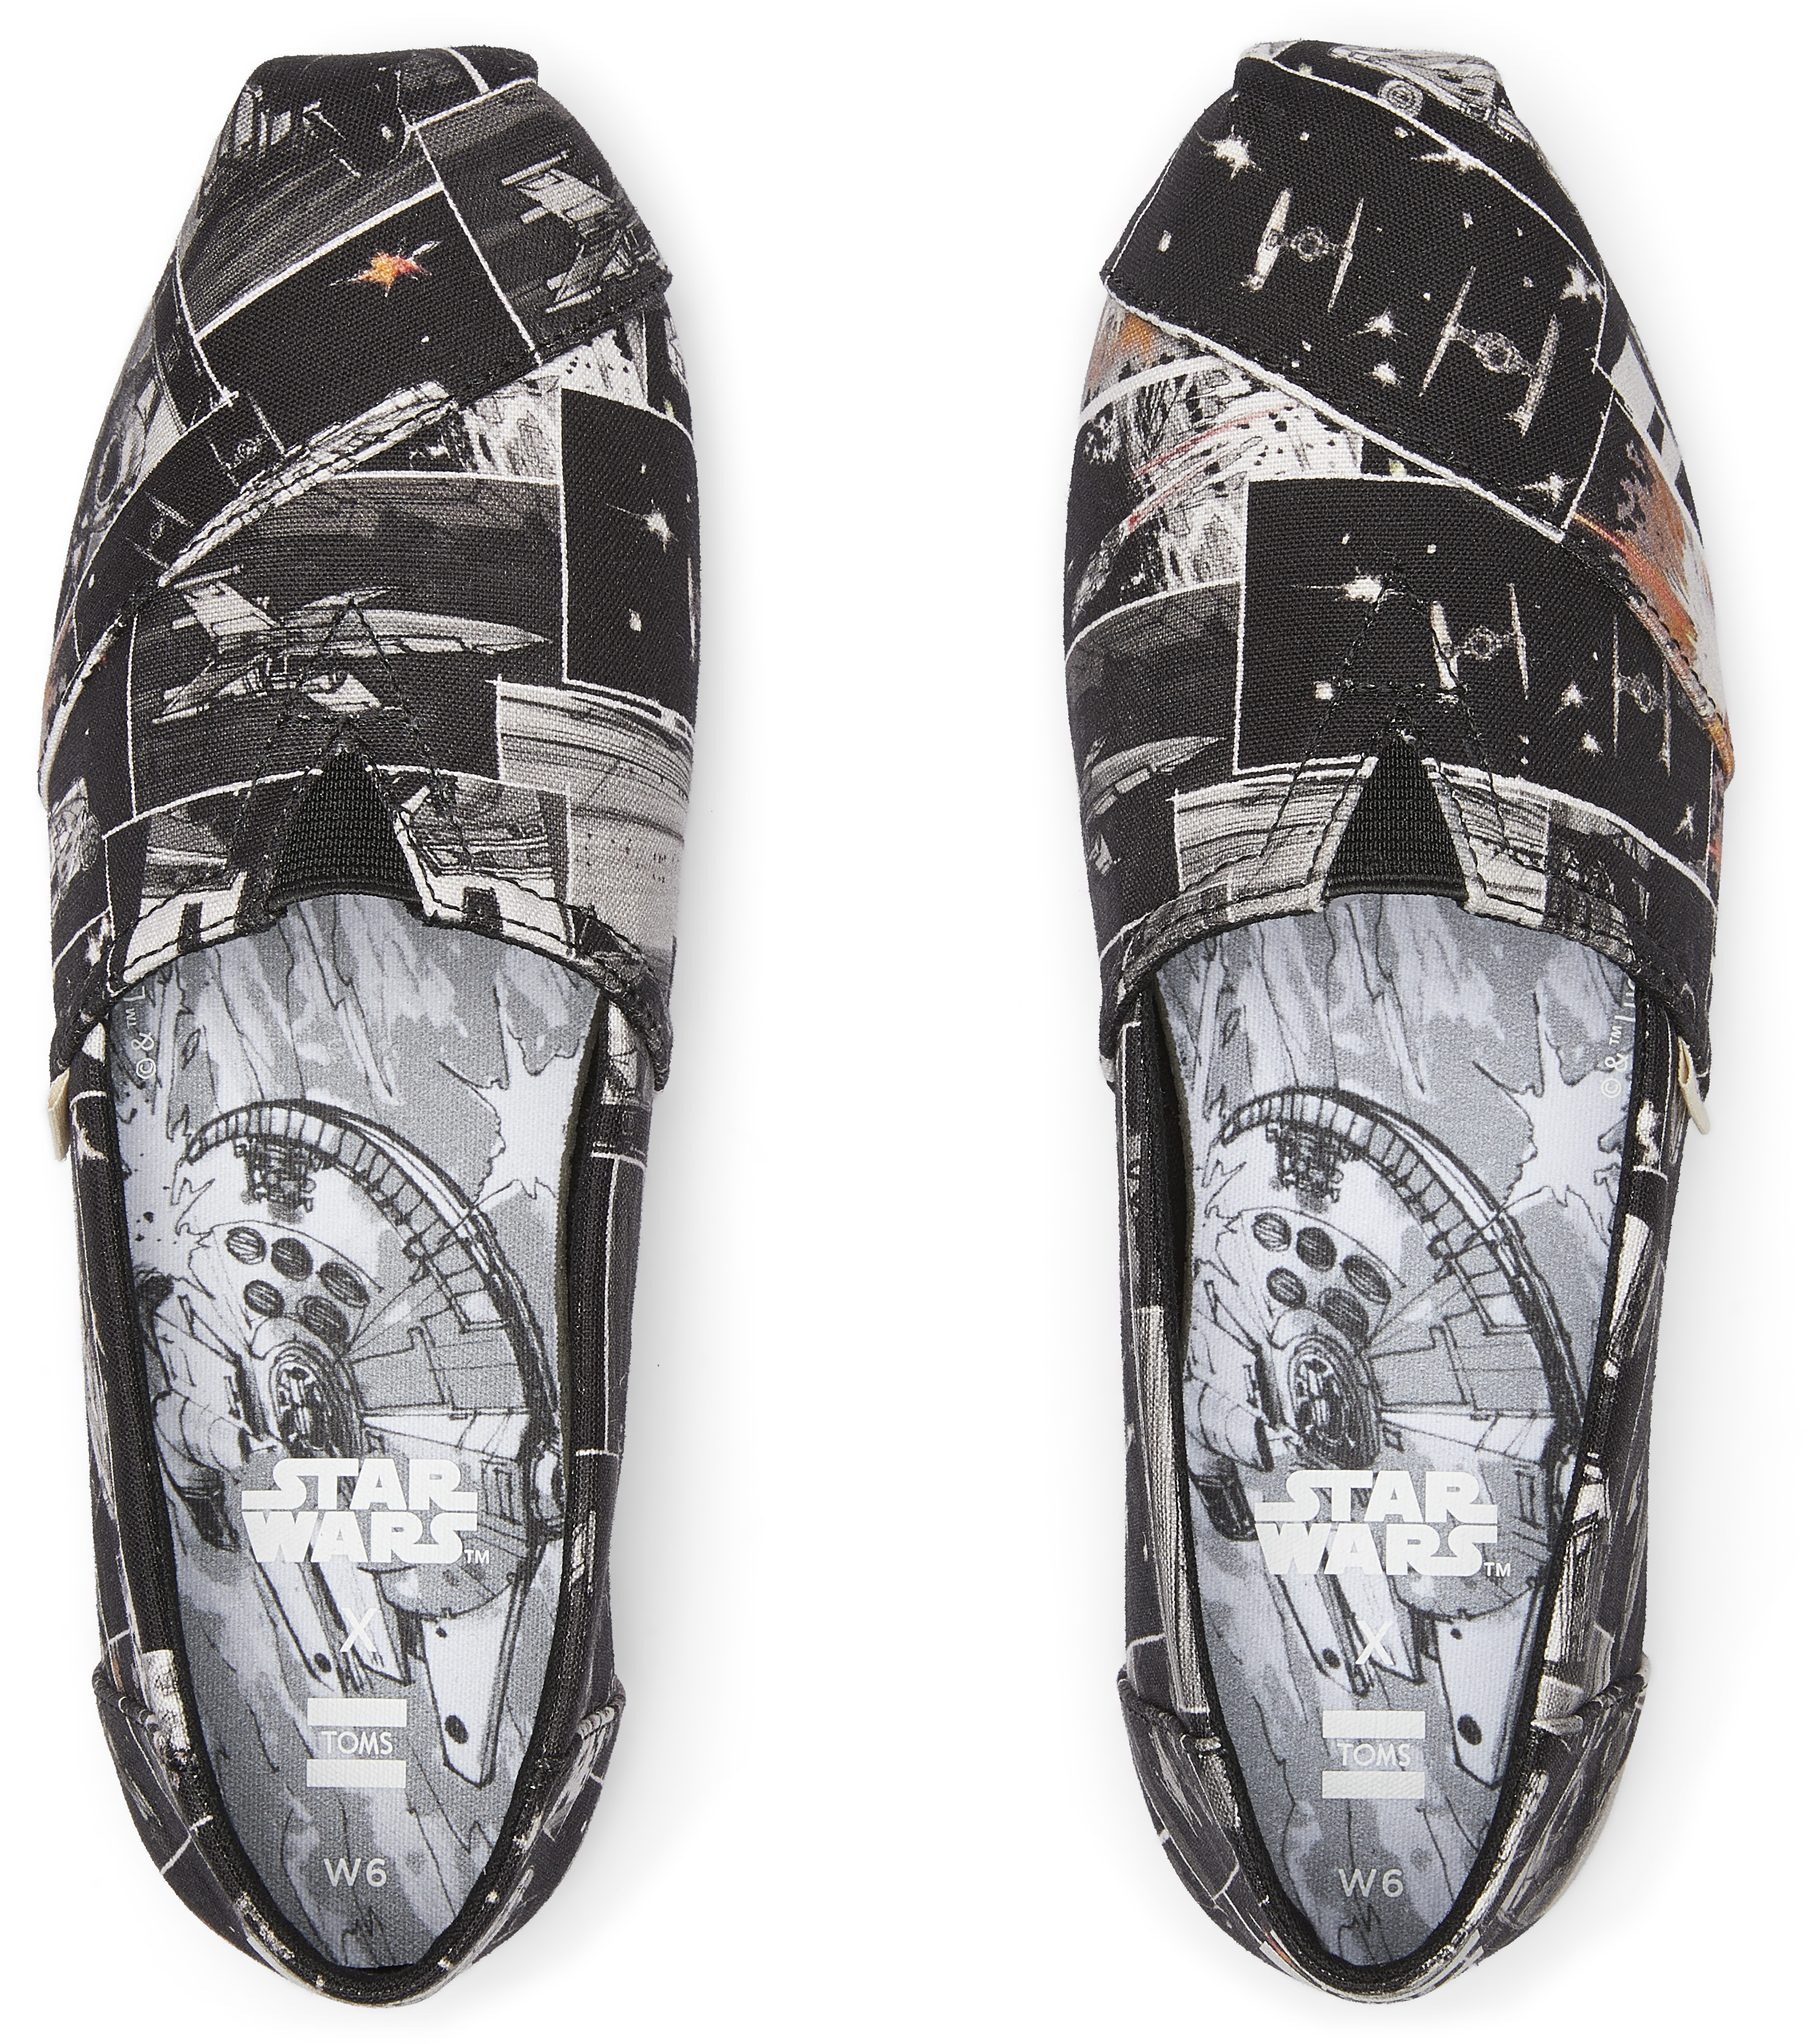 One of the new pairs of Star Wars inspired shoes by TOMS.